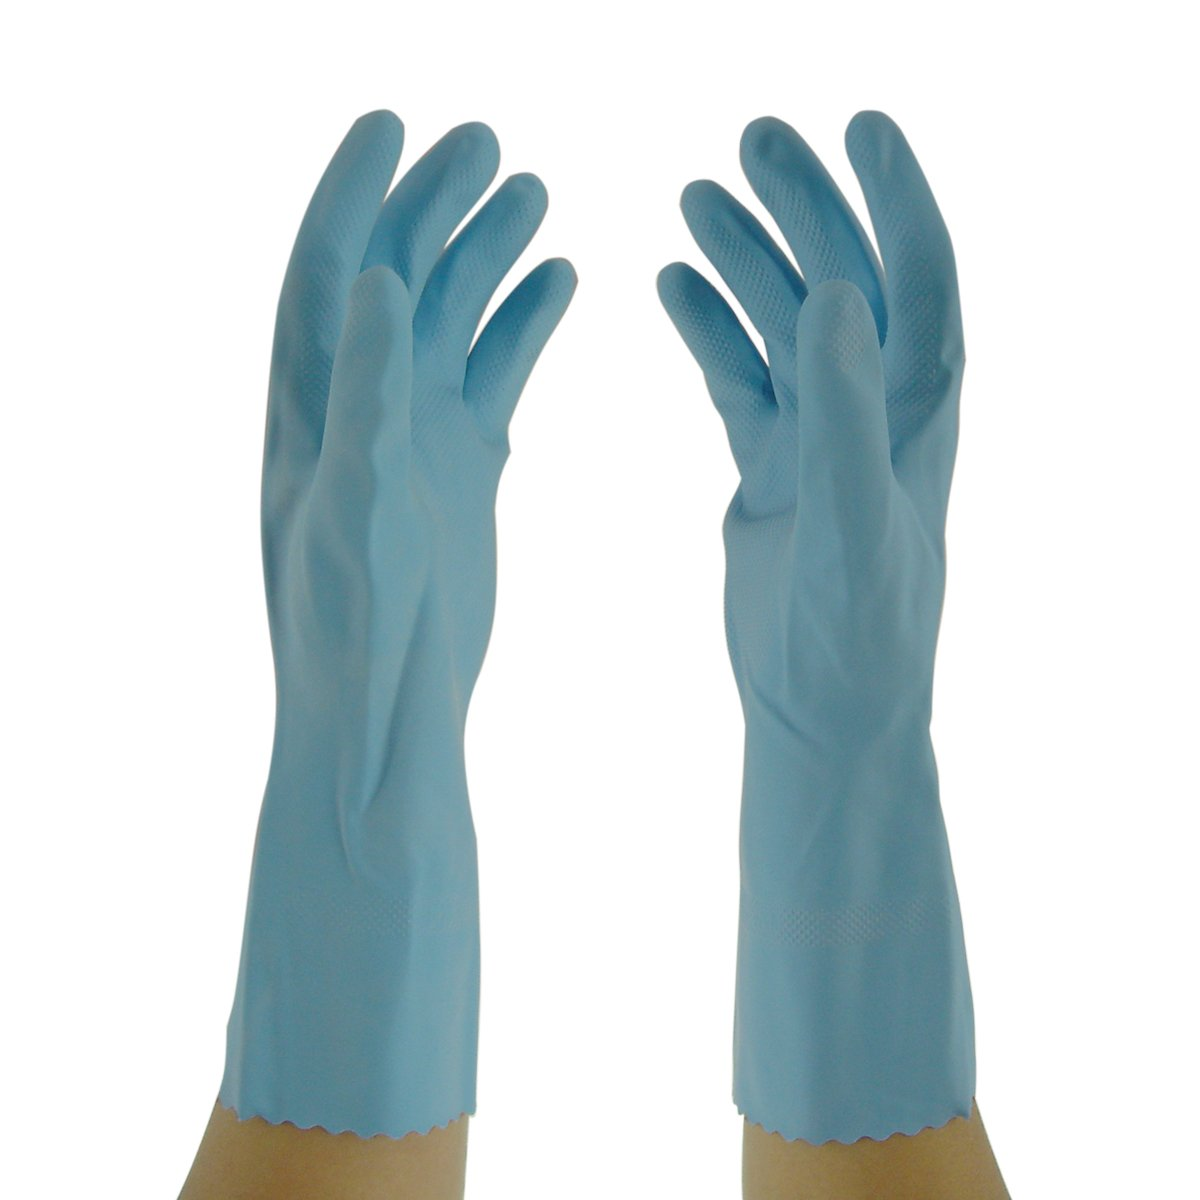 Primeway Flocklined Hand Gloves